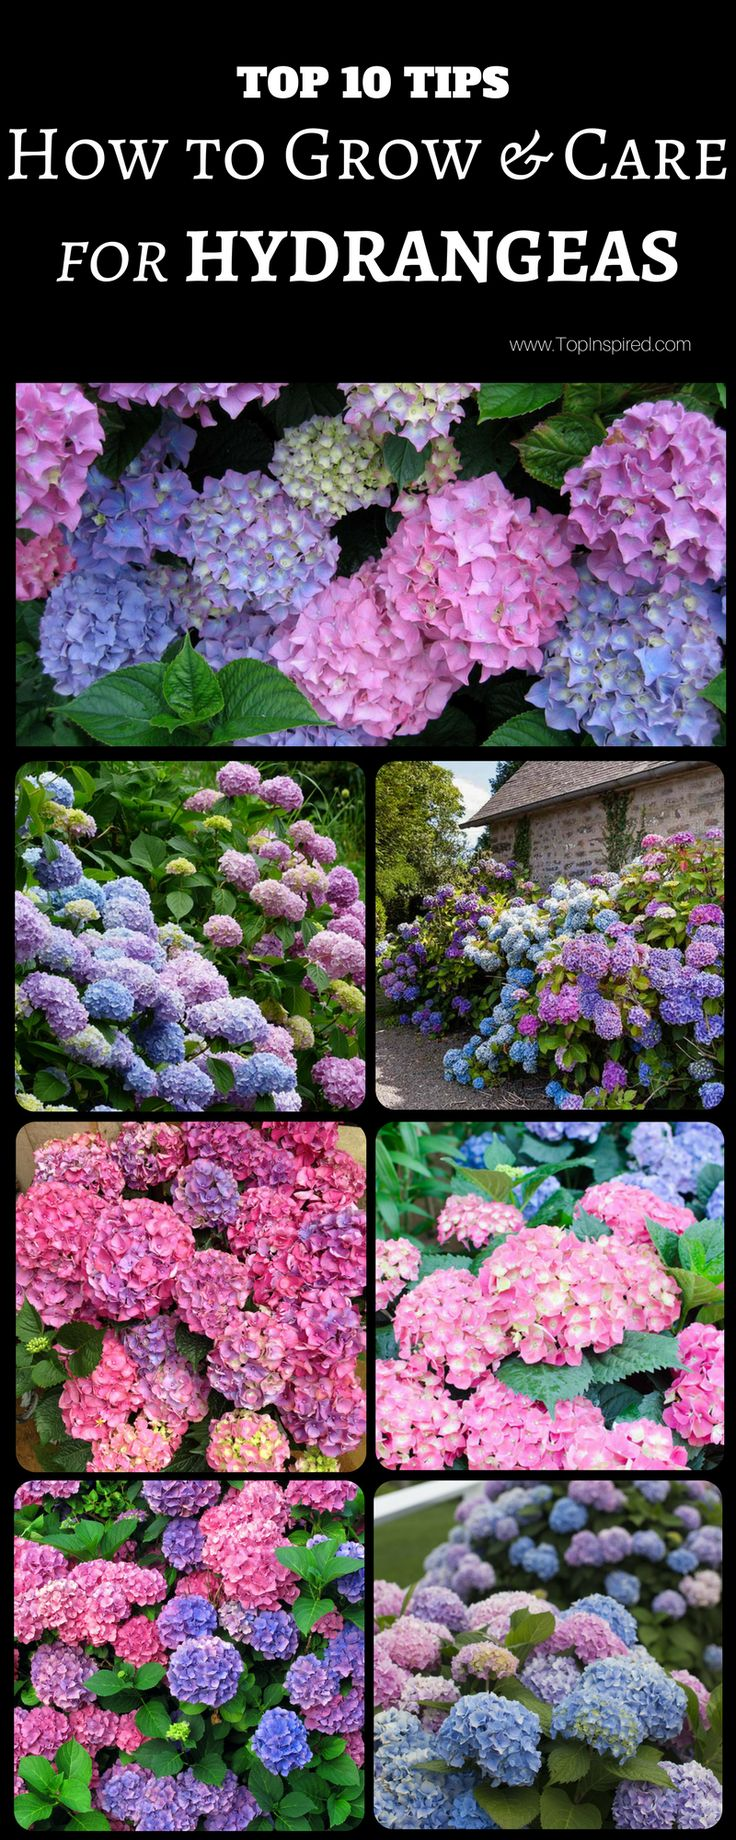 Top 10 Tips on How to Plant, Grow and Care for Hydrangeas | Garden Tips | Tips and instructions for planting and caring for hydrangeas, a popular perennial garden shrub.